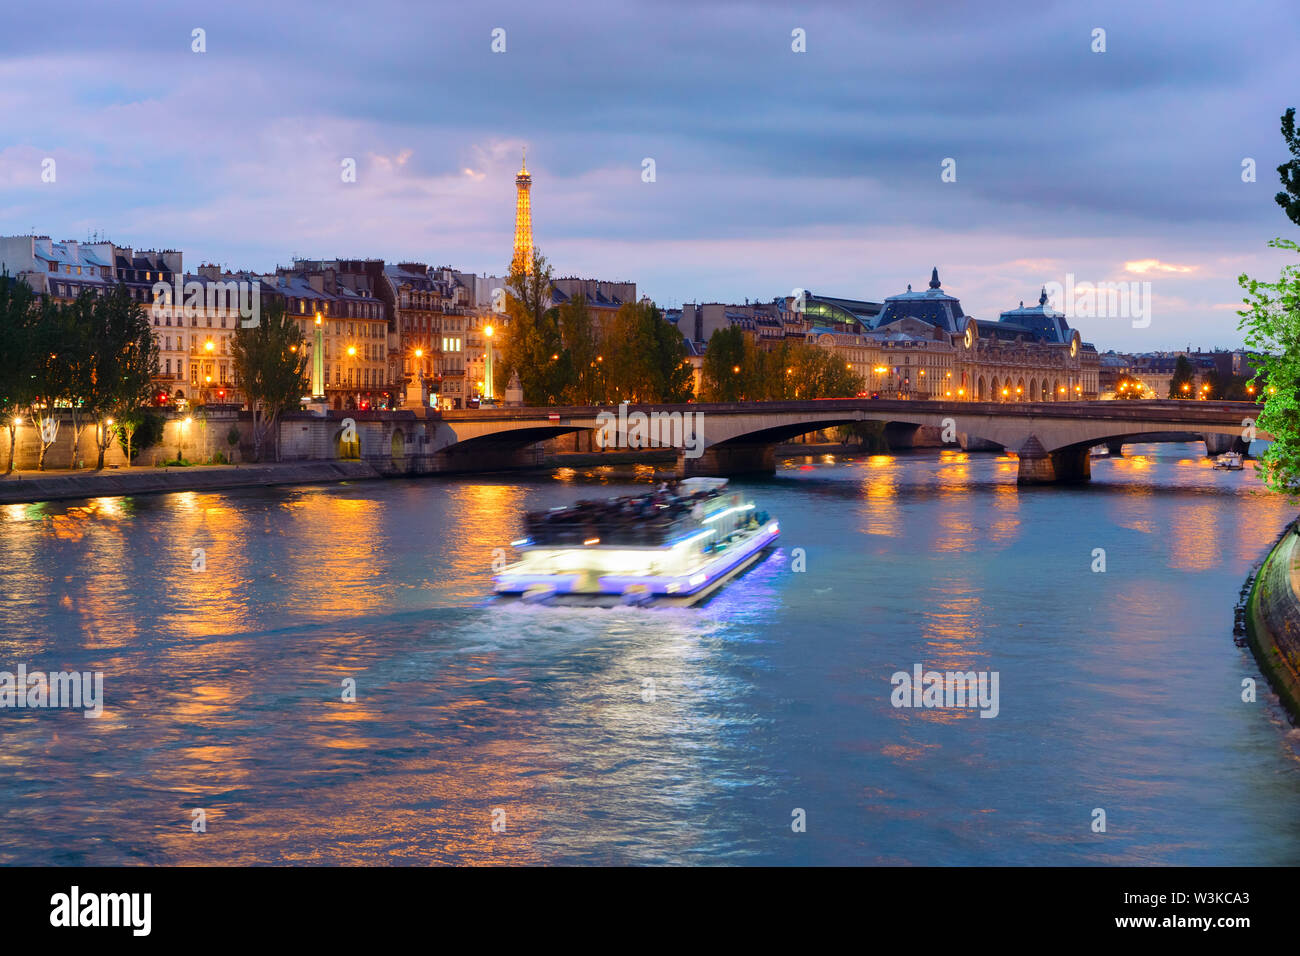 Pont Neuf and Cite island over Seine river with floating boat at night, France - Stock Image